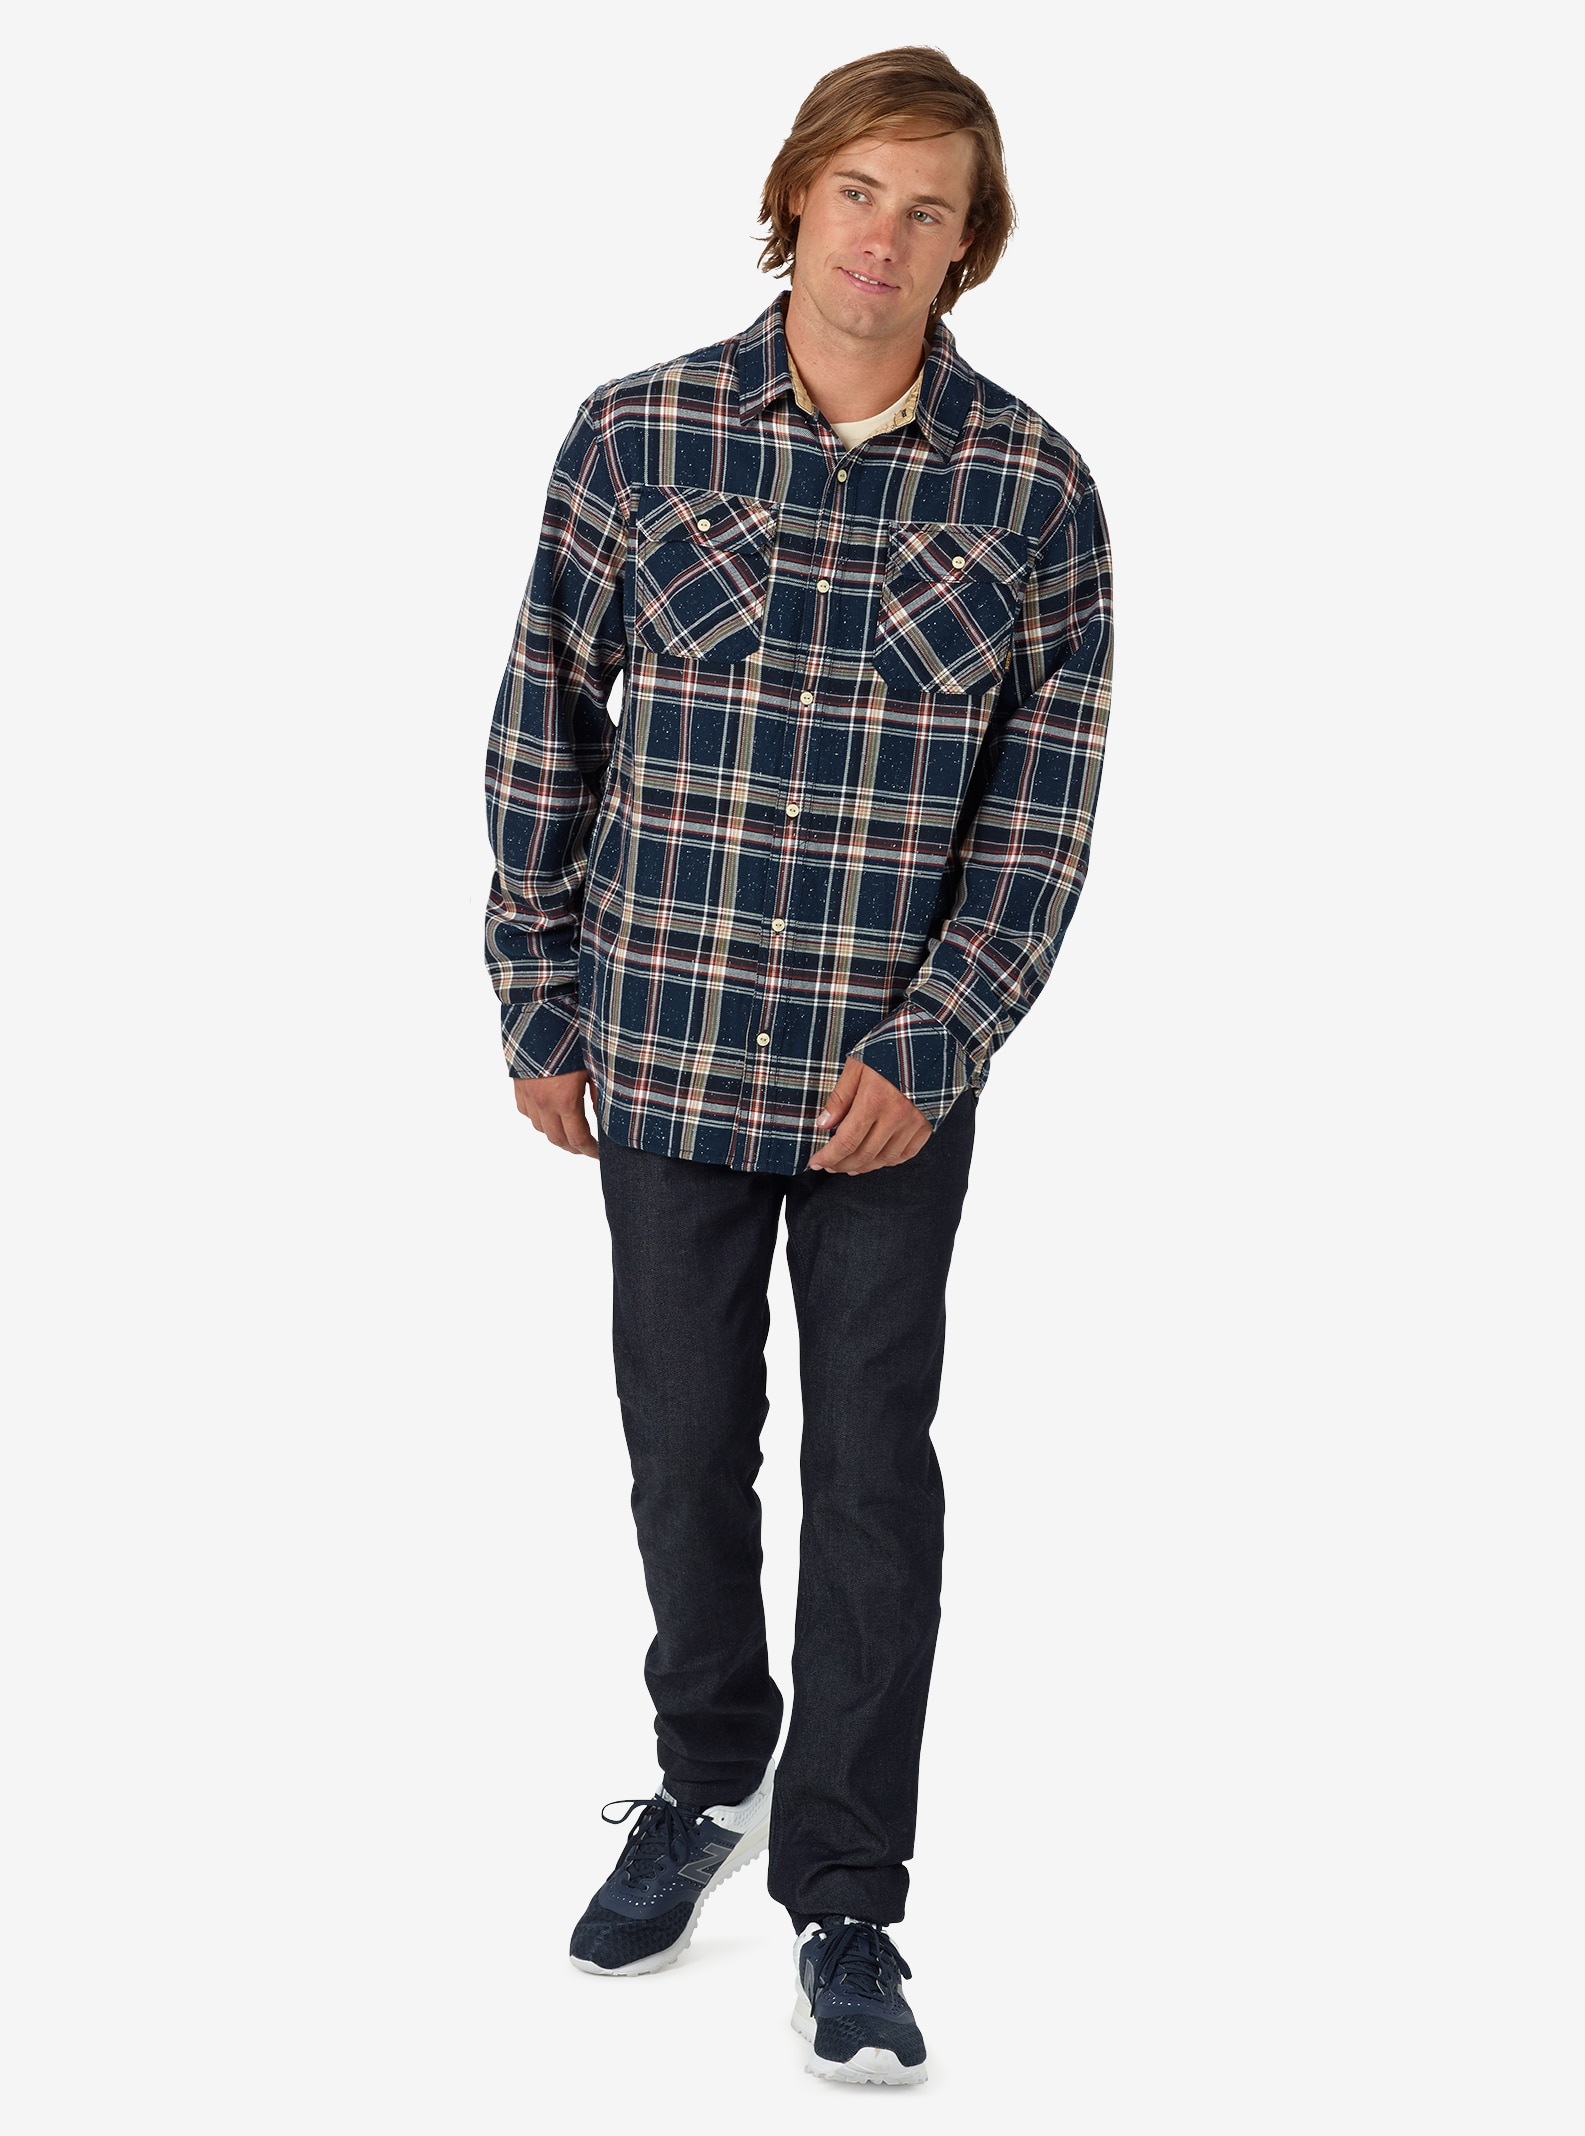 Burton Brighton Flannel shown in Eclipse Plaid